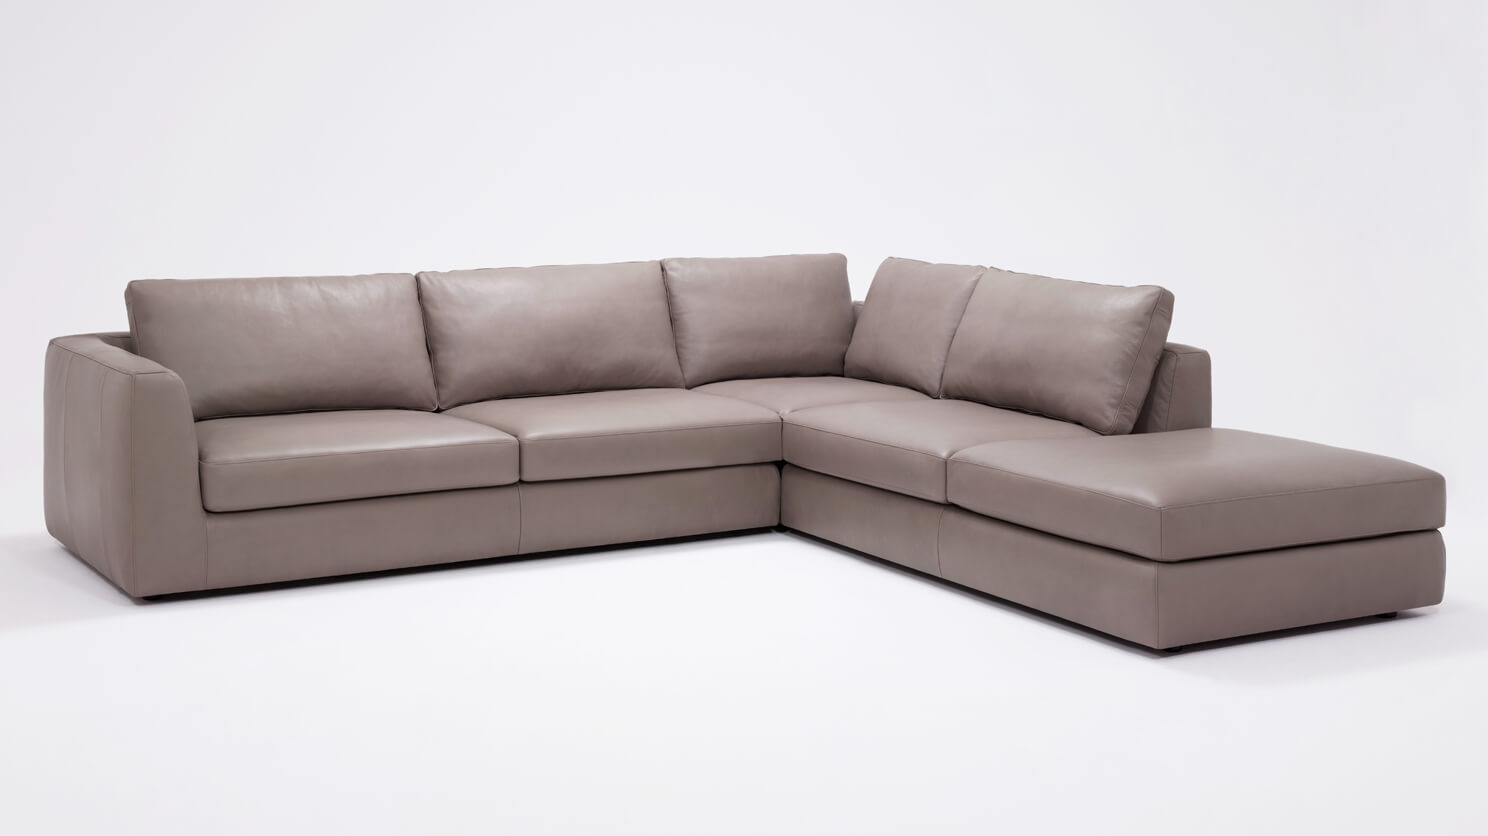 Merveilleux Cello 3 Piece Sectional Sofa With Backless Chaise   Leather | EQ3